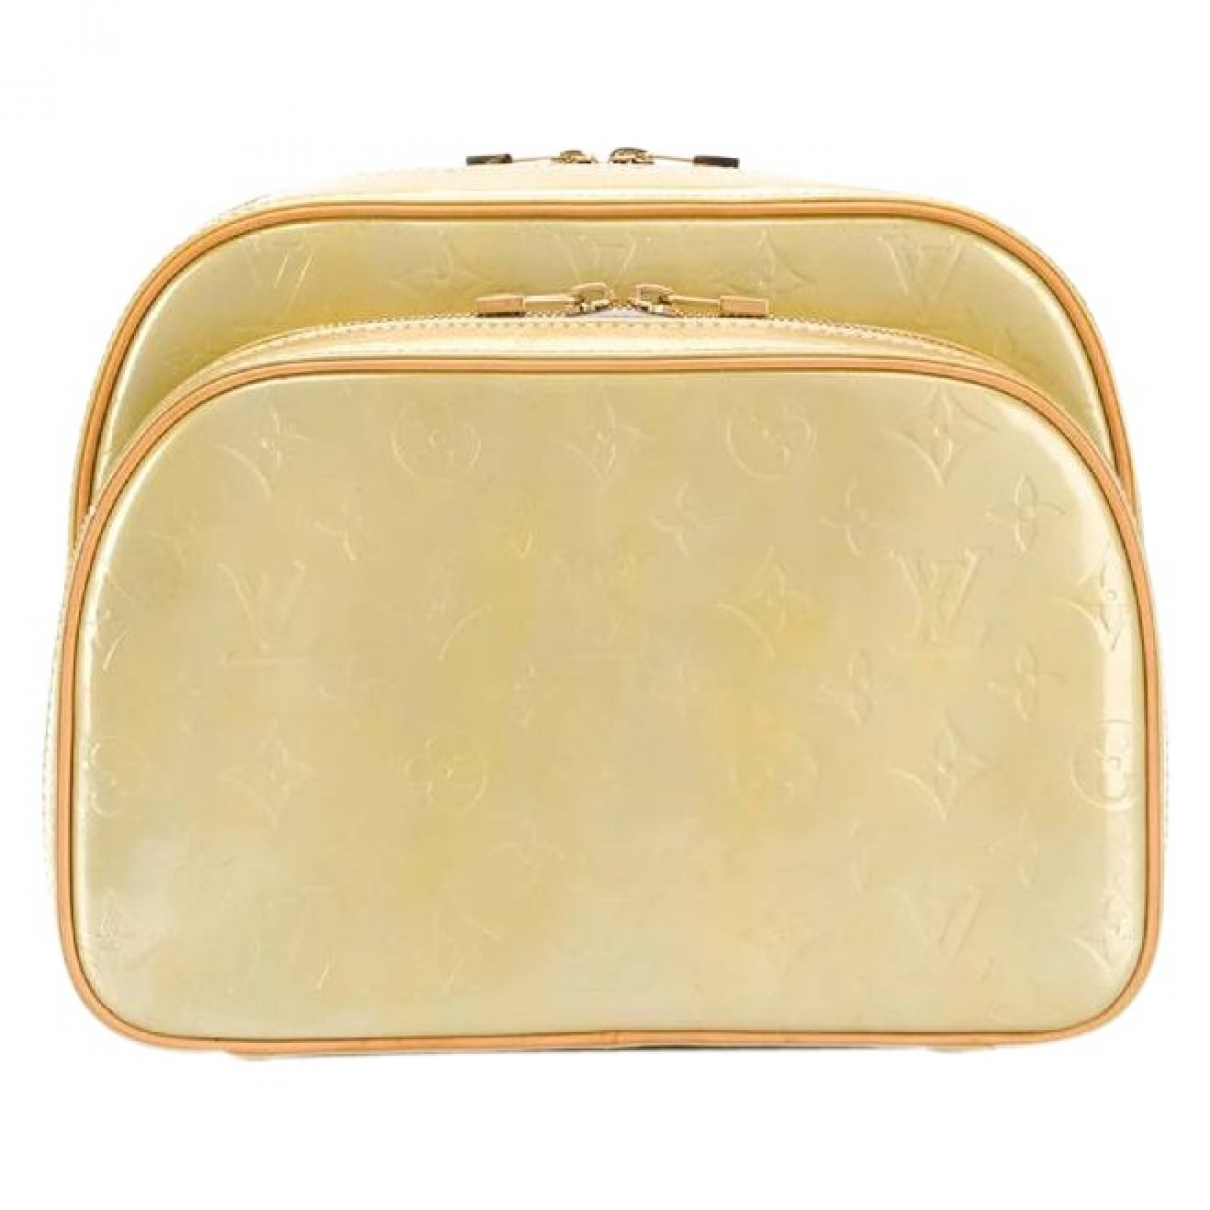 Louis Vuitton \N Beige Patent leather backpack for Women \N